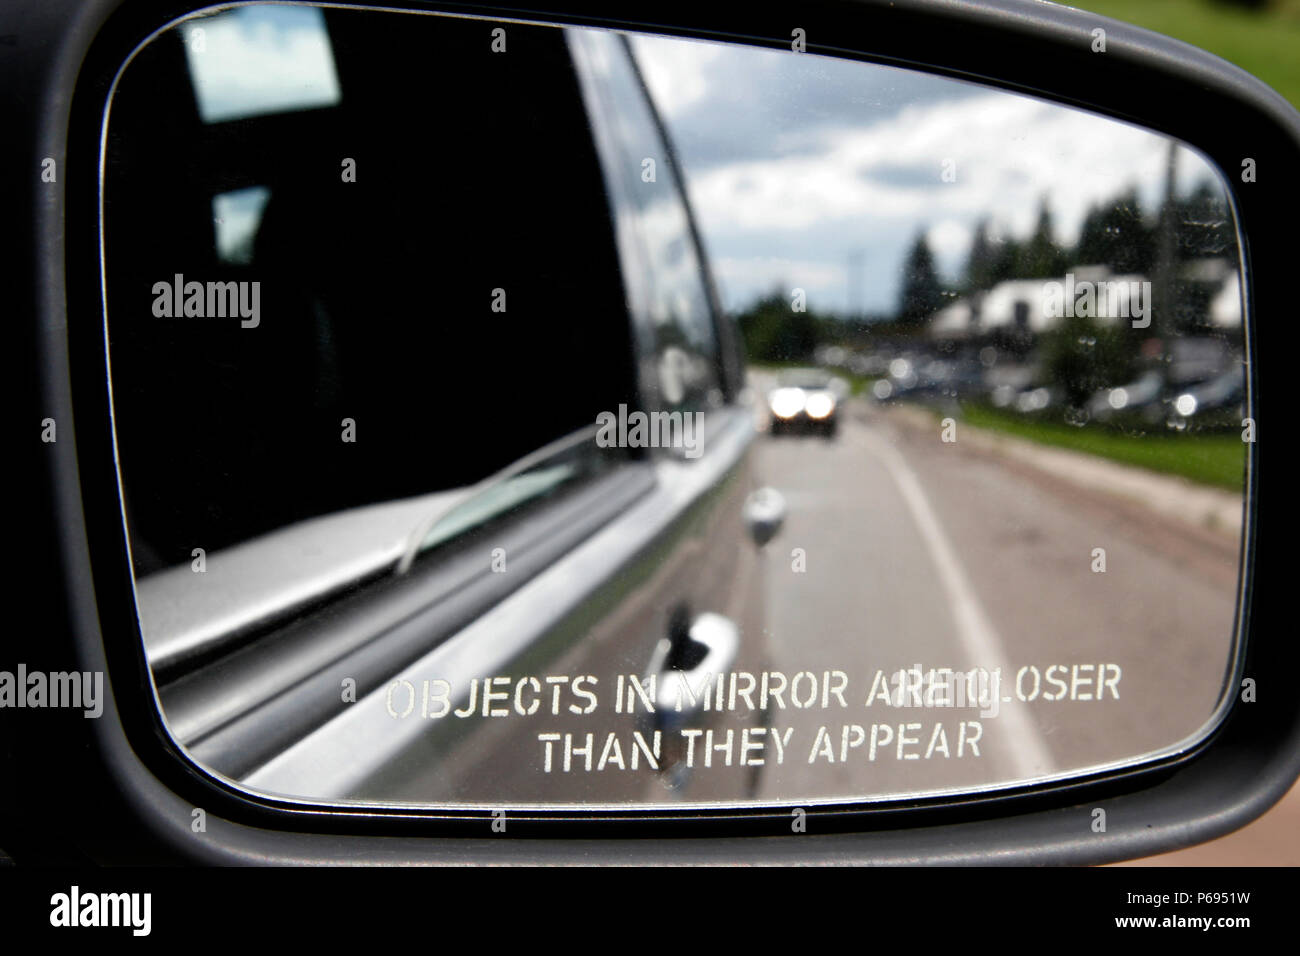 Objects In Mirror May Be Closer Than >> A Mirror On The Side Of A Car States A Warning Objects In Mirror